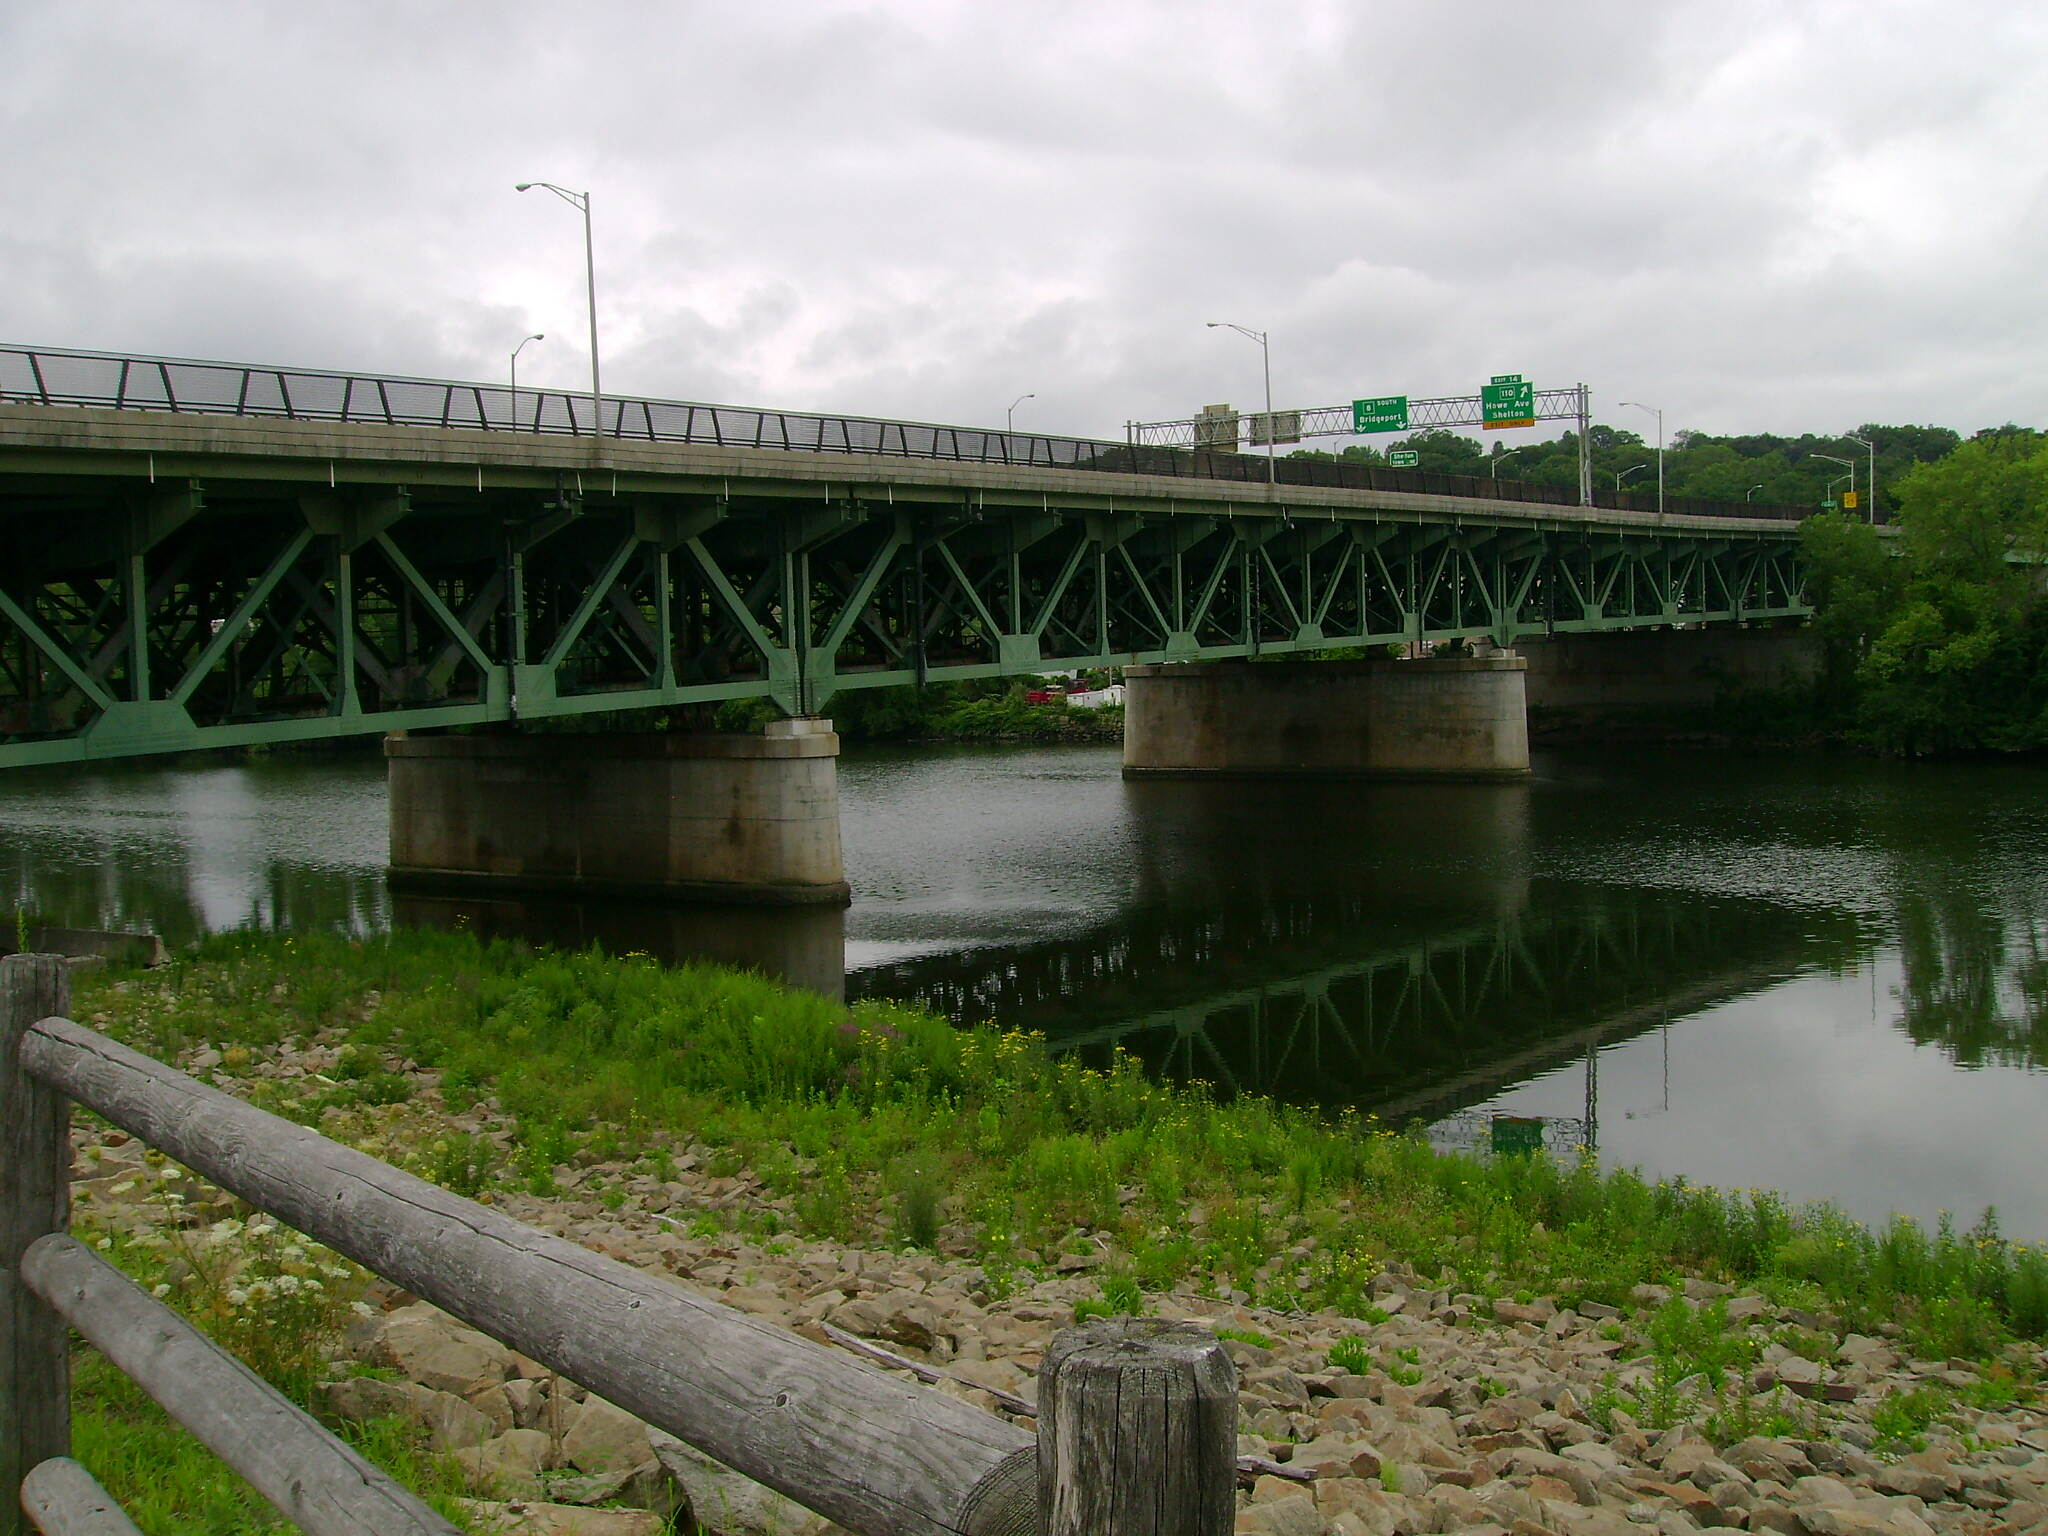 Derby Greenway Route 8 bridge crossing the Housatonic River